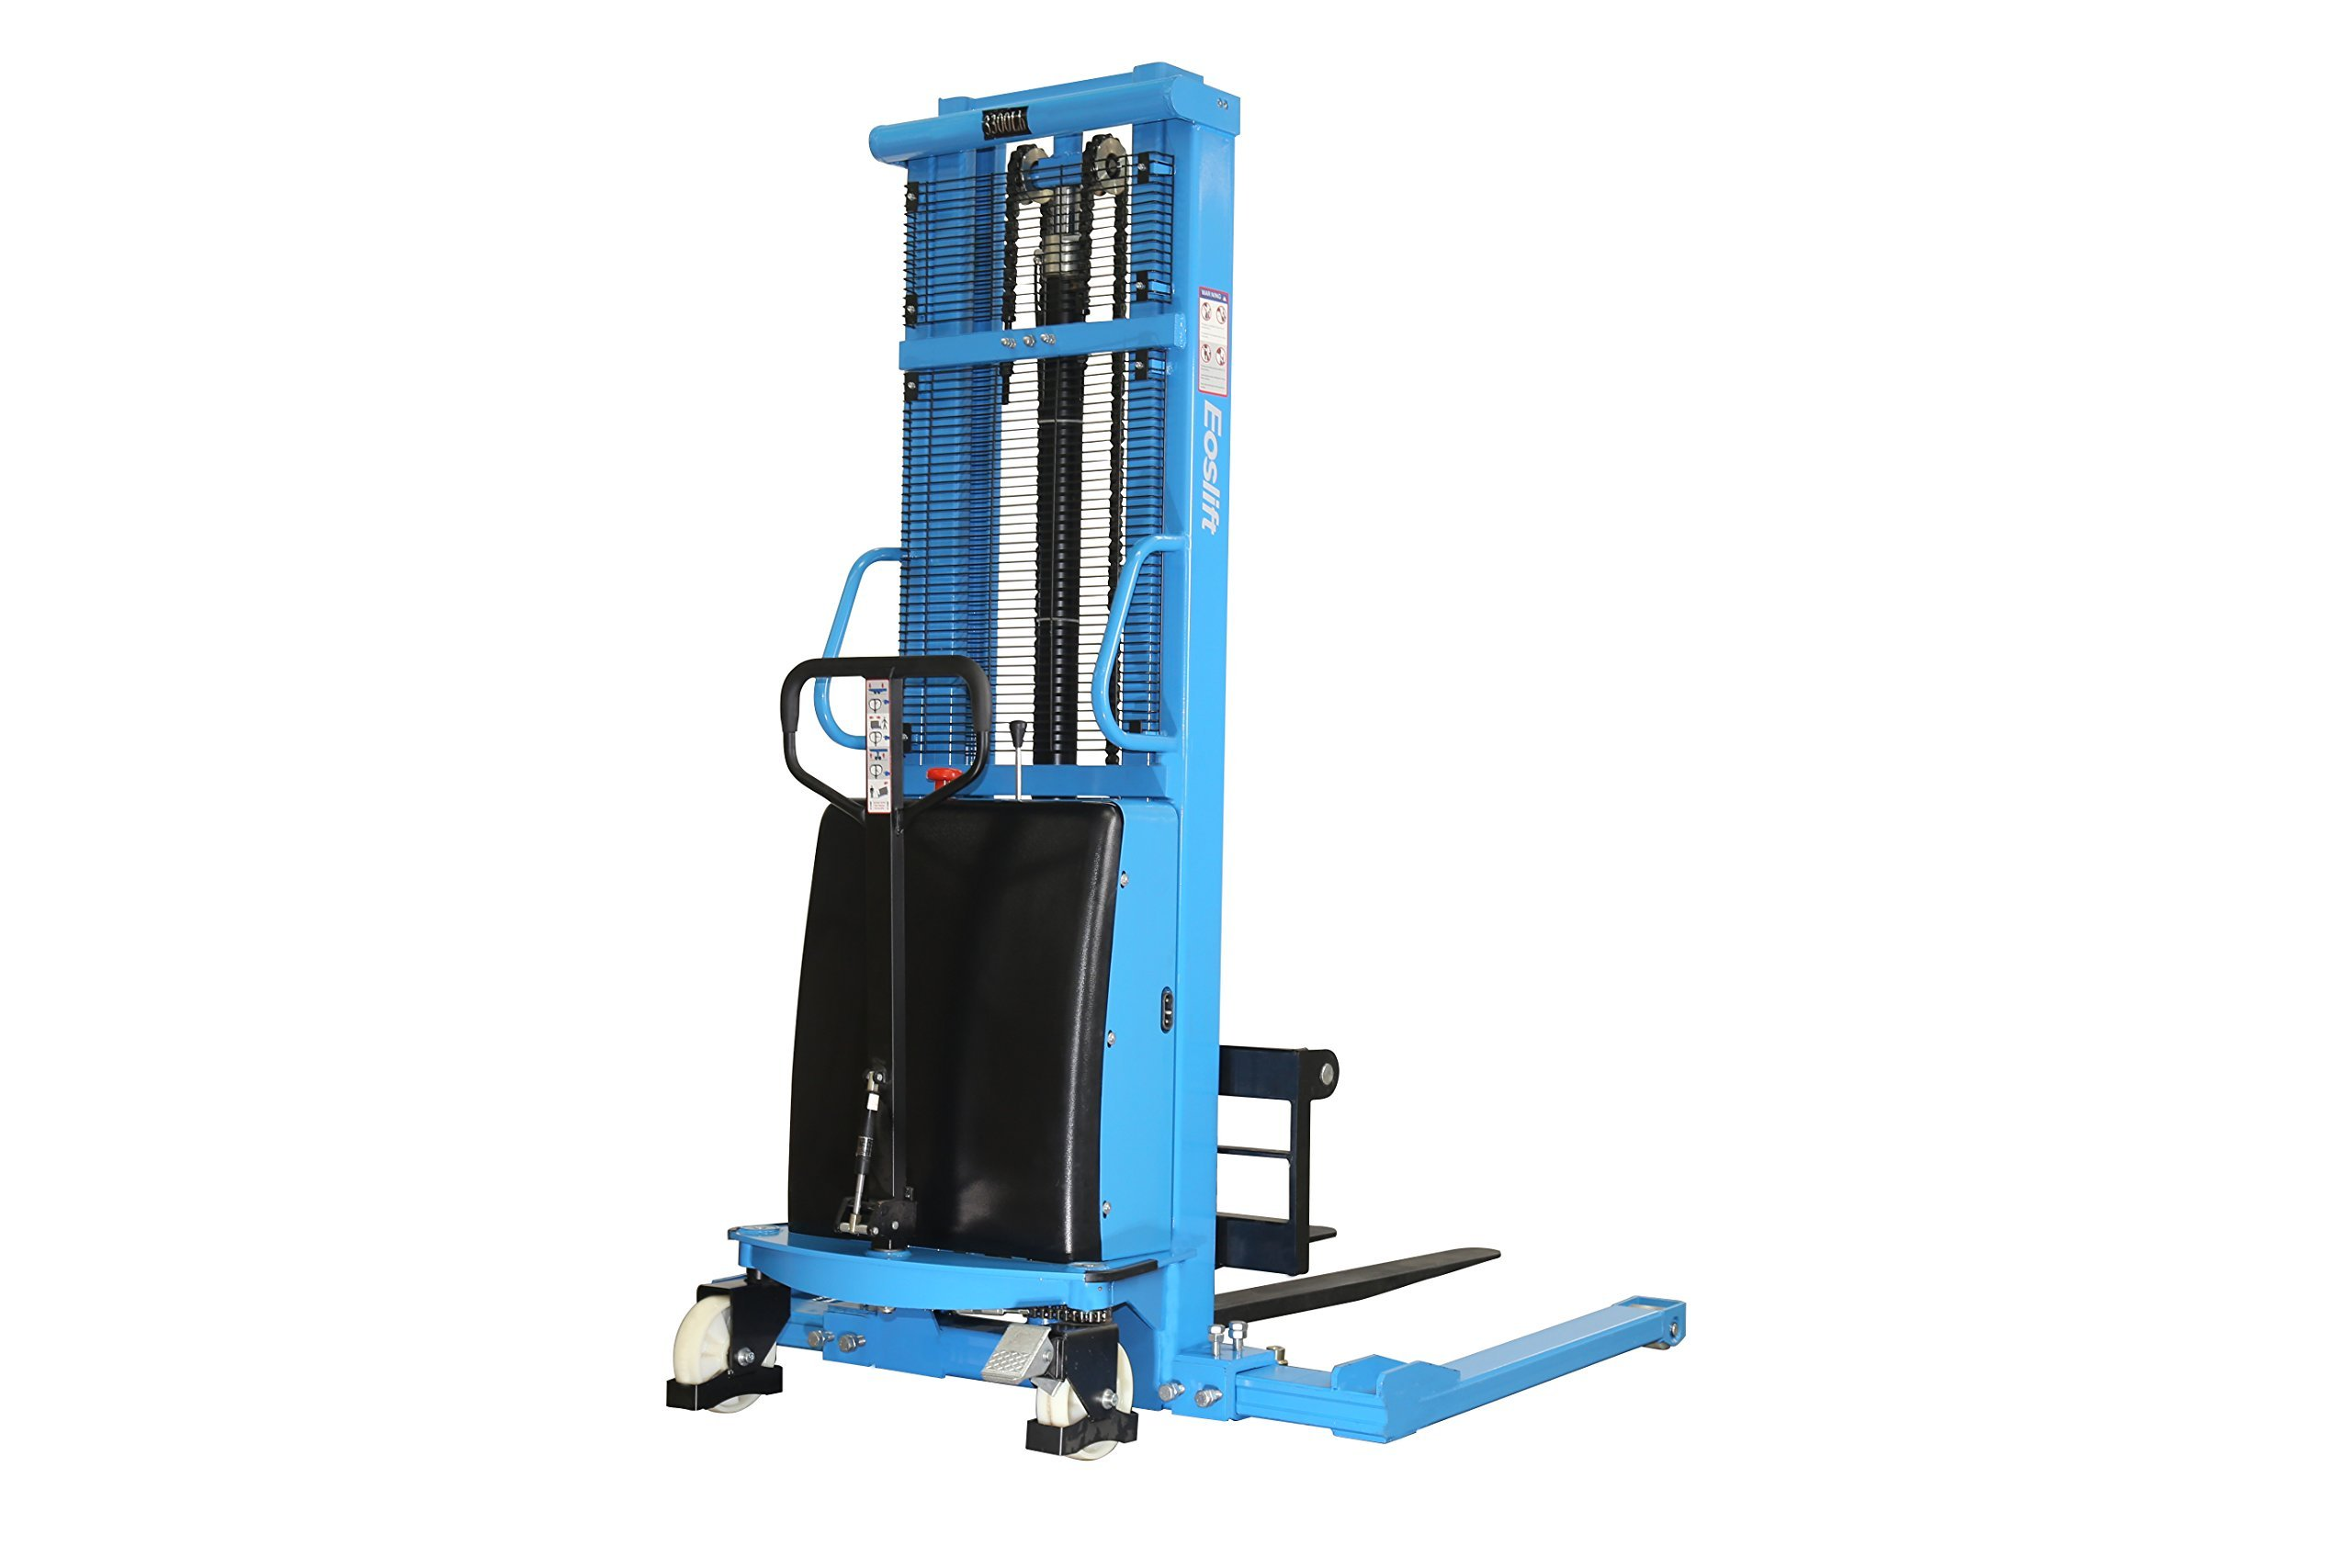 Eoslift S15J Powered Lift / Semi-Electric Stacker With Adjustable Forks and Support Legs, 118'' Raised Height, 42'' Length X 8.3''-33'' Adjustable Width Fork, 3300 Lb. Capacity